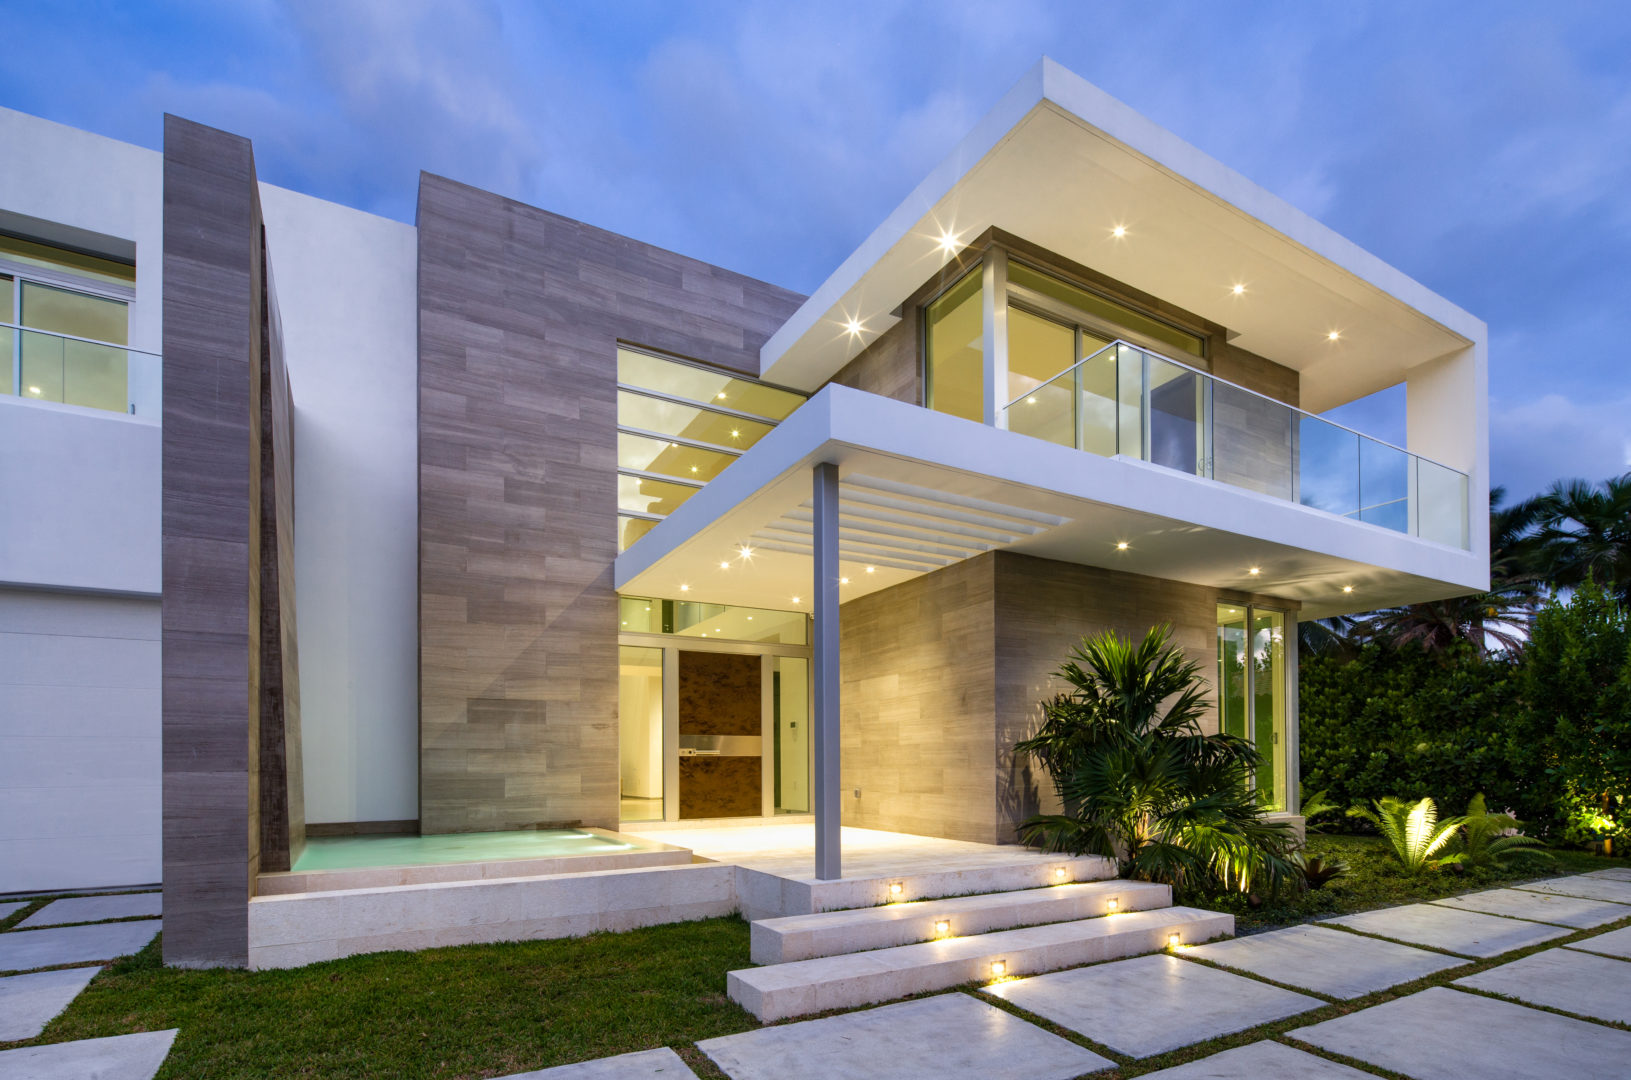 Golden Beach House High-end builder contractor construction miami waterfront pool